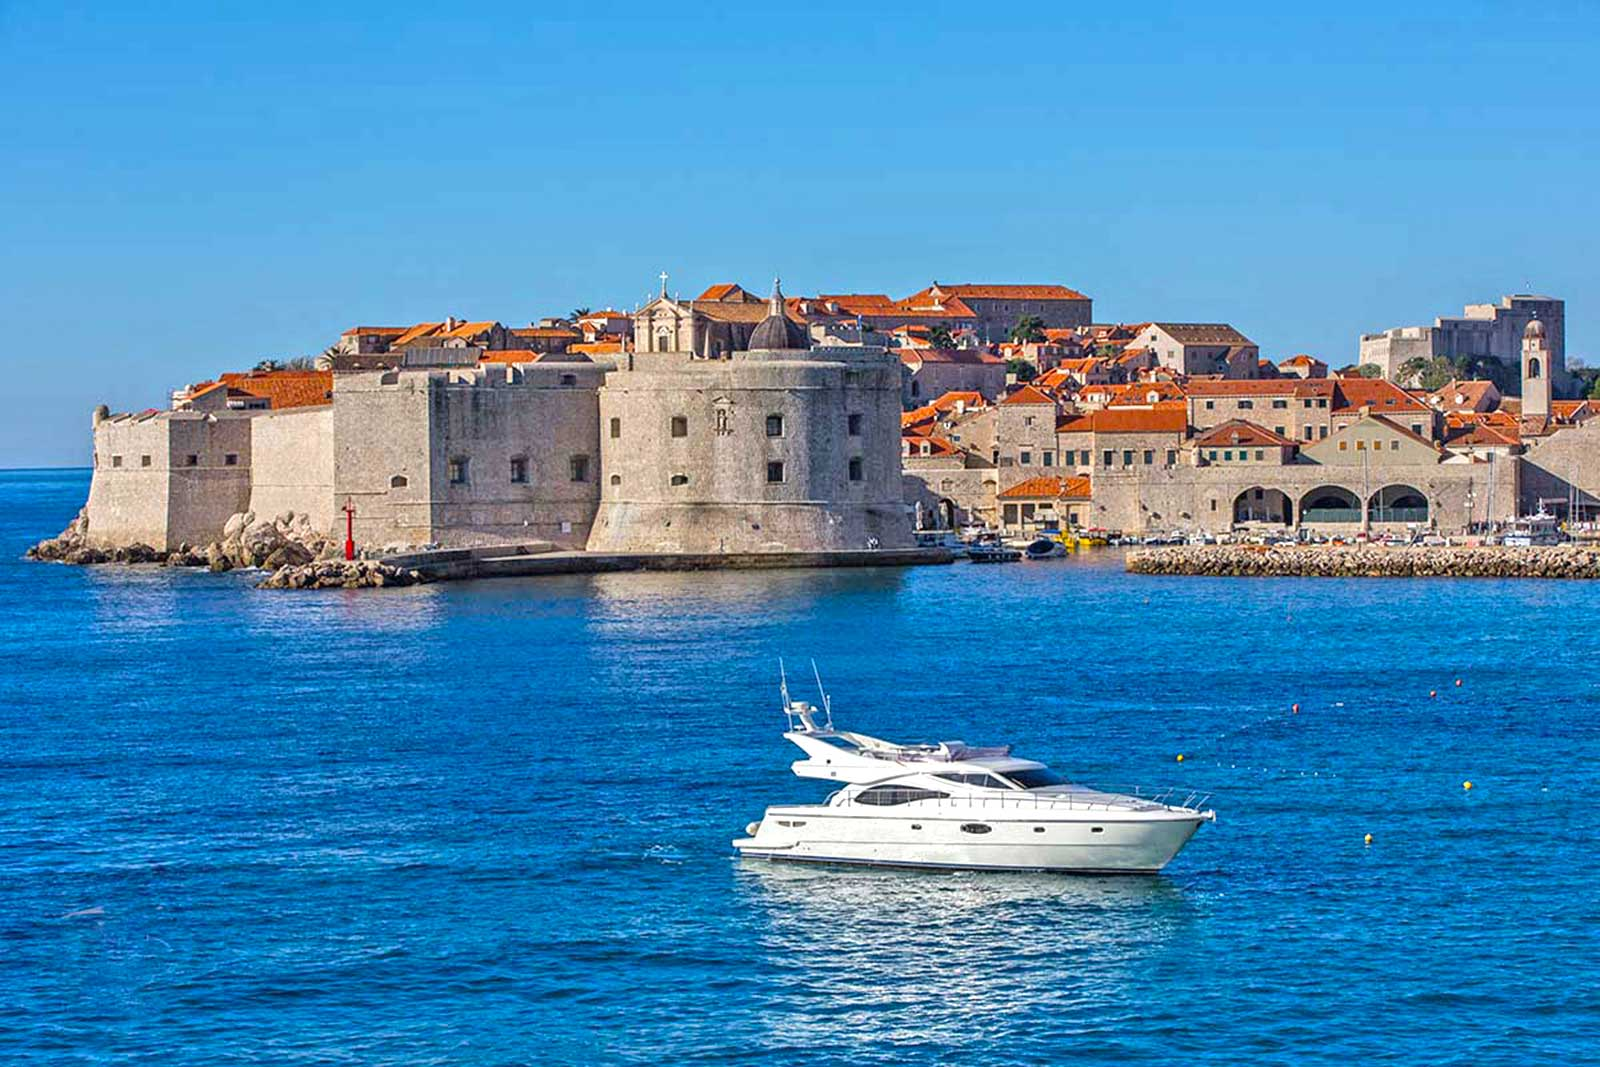 -images-excursions-elaphite-islands-speed-boat-excursion-a-dubrovnik-boats-02-ferretti-591-dubrovnik-old-town.jpg